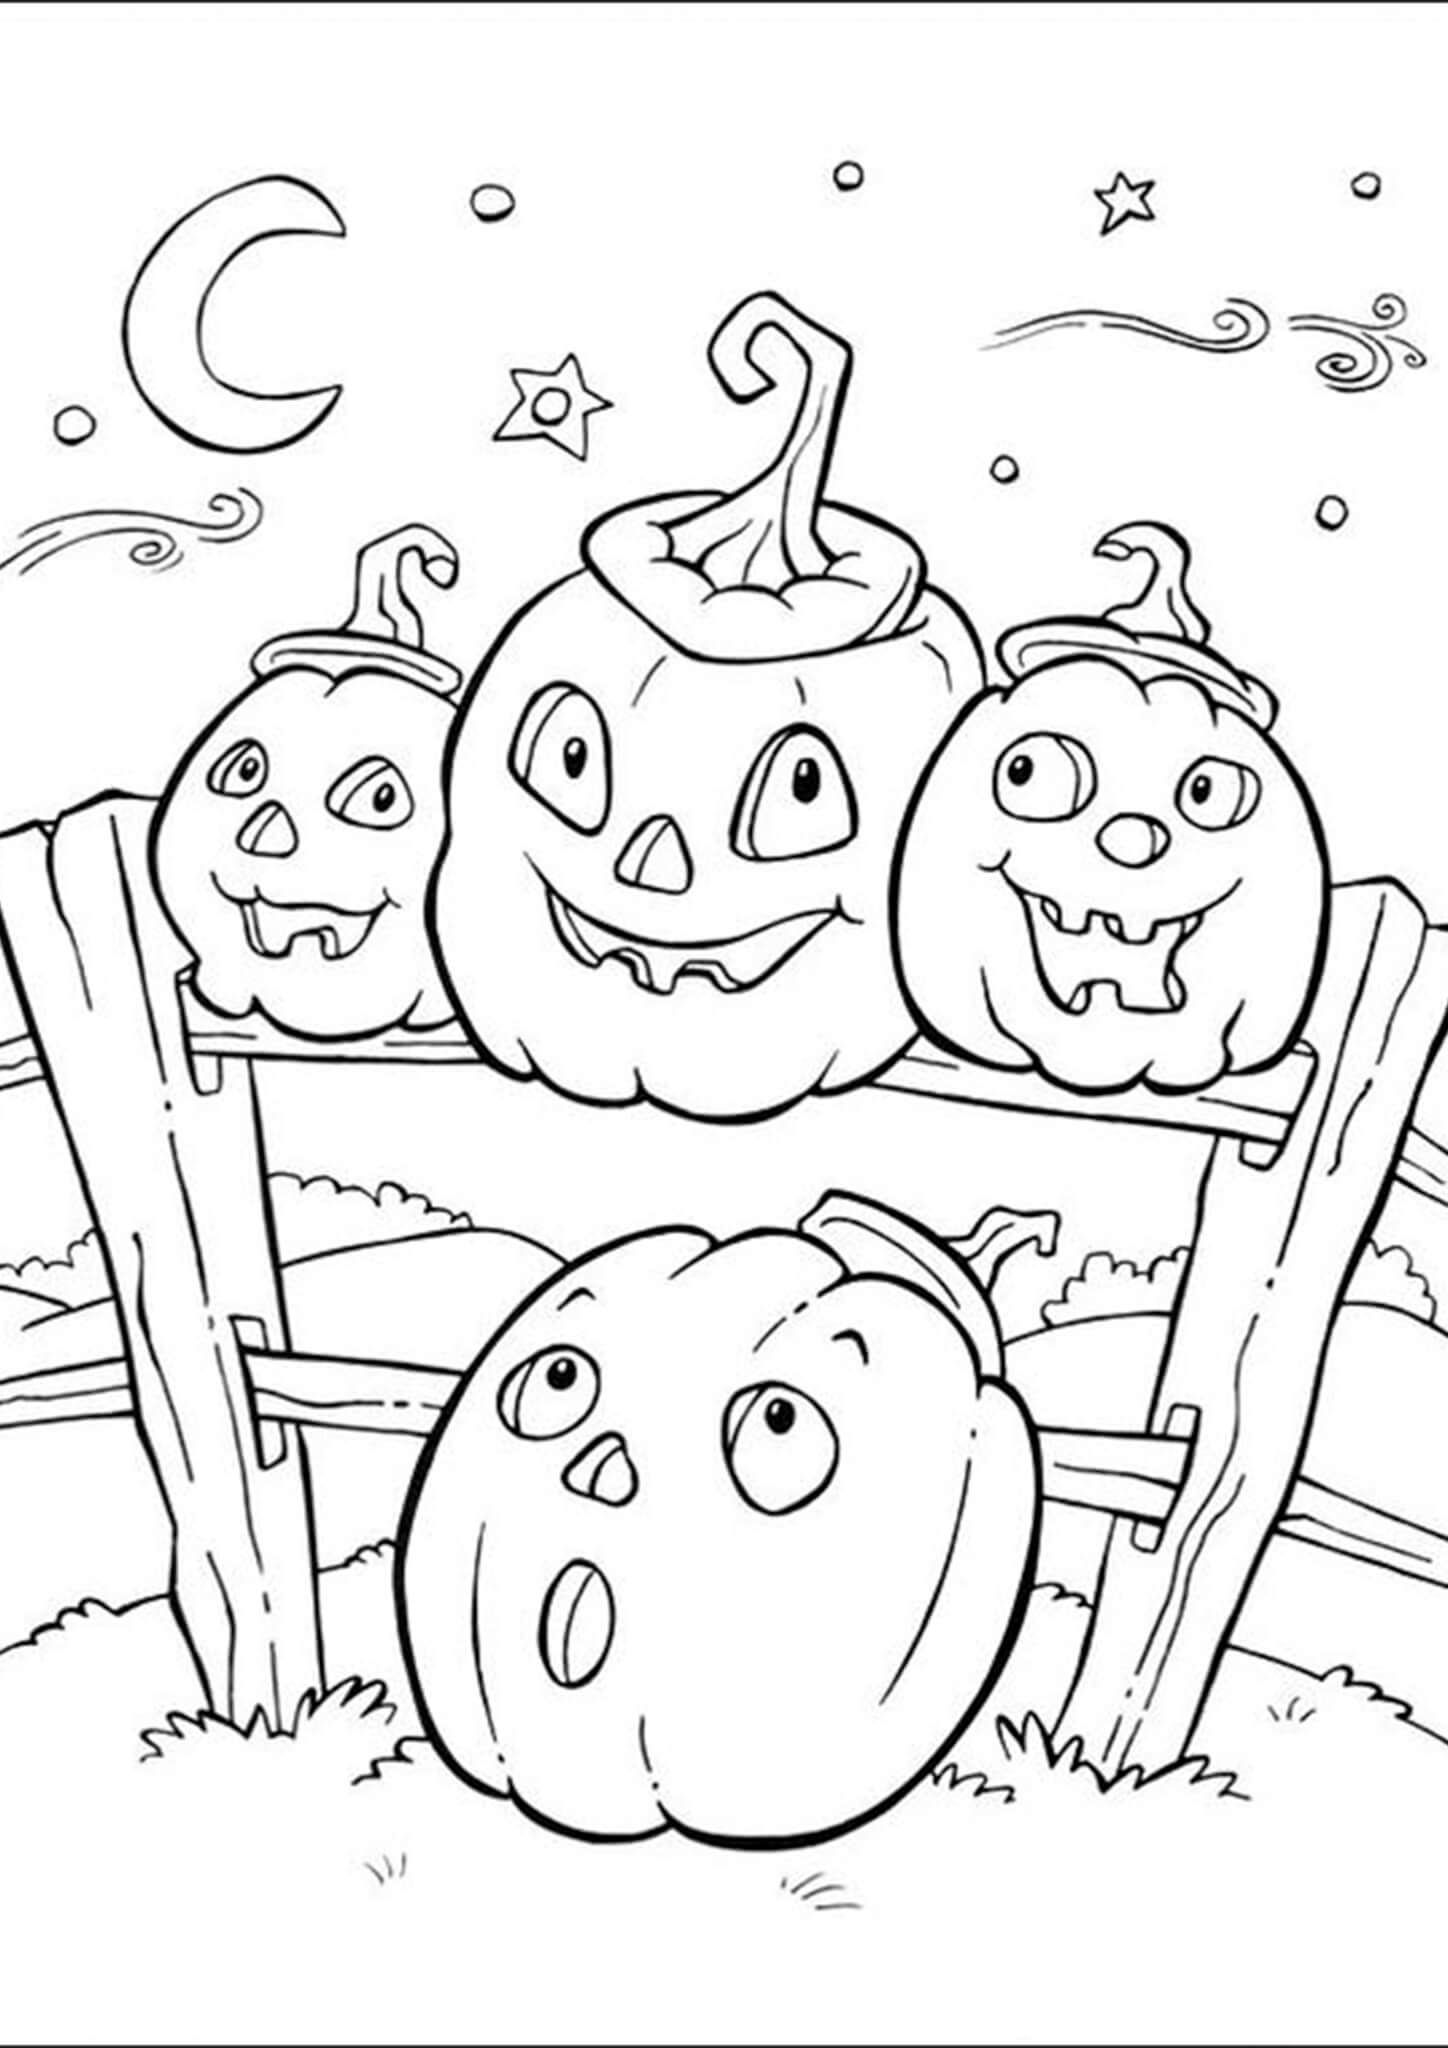 Free & Easy To Print Halloween Coloring Pages in 2020